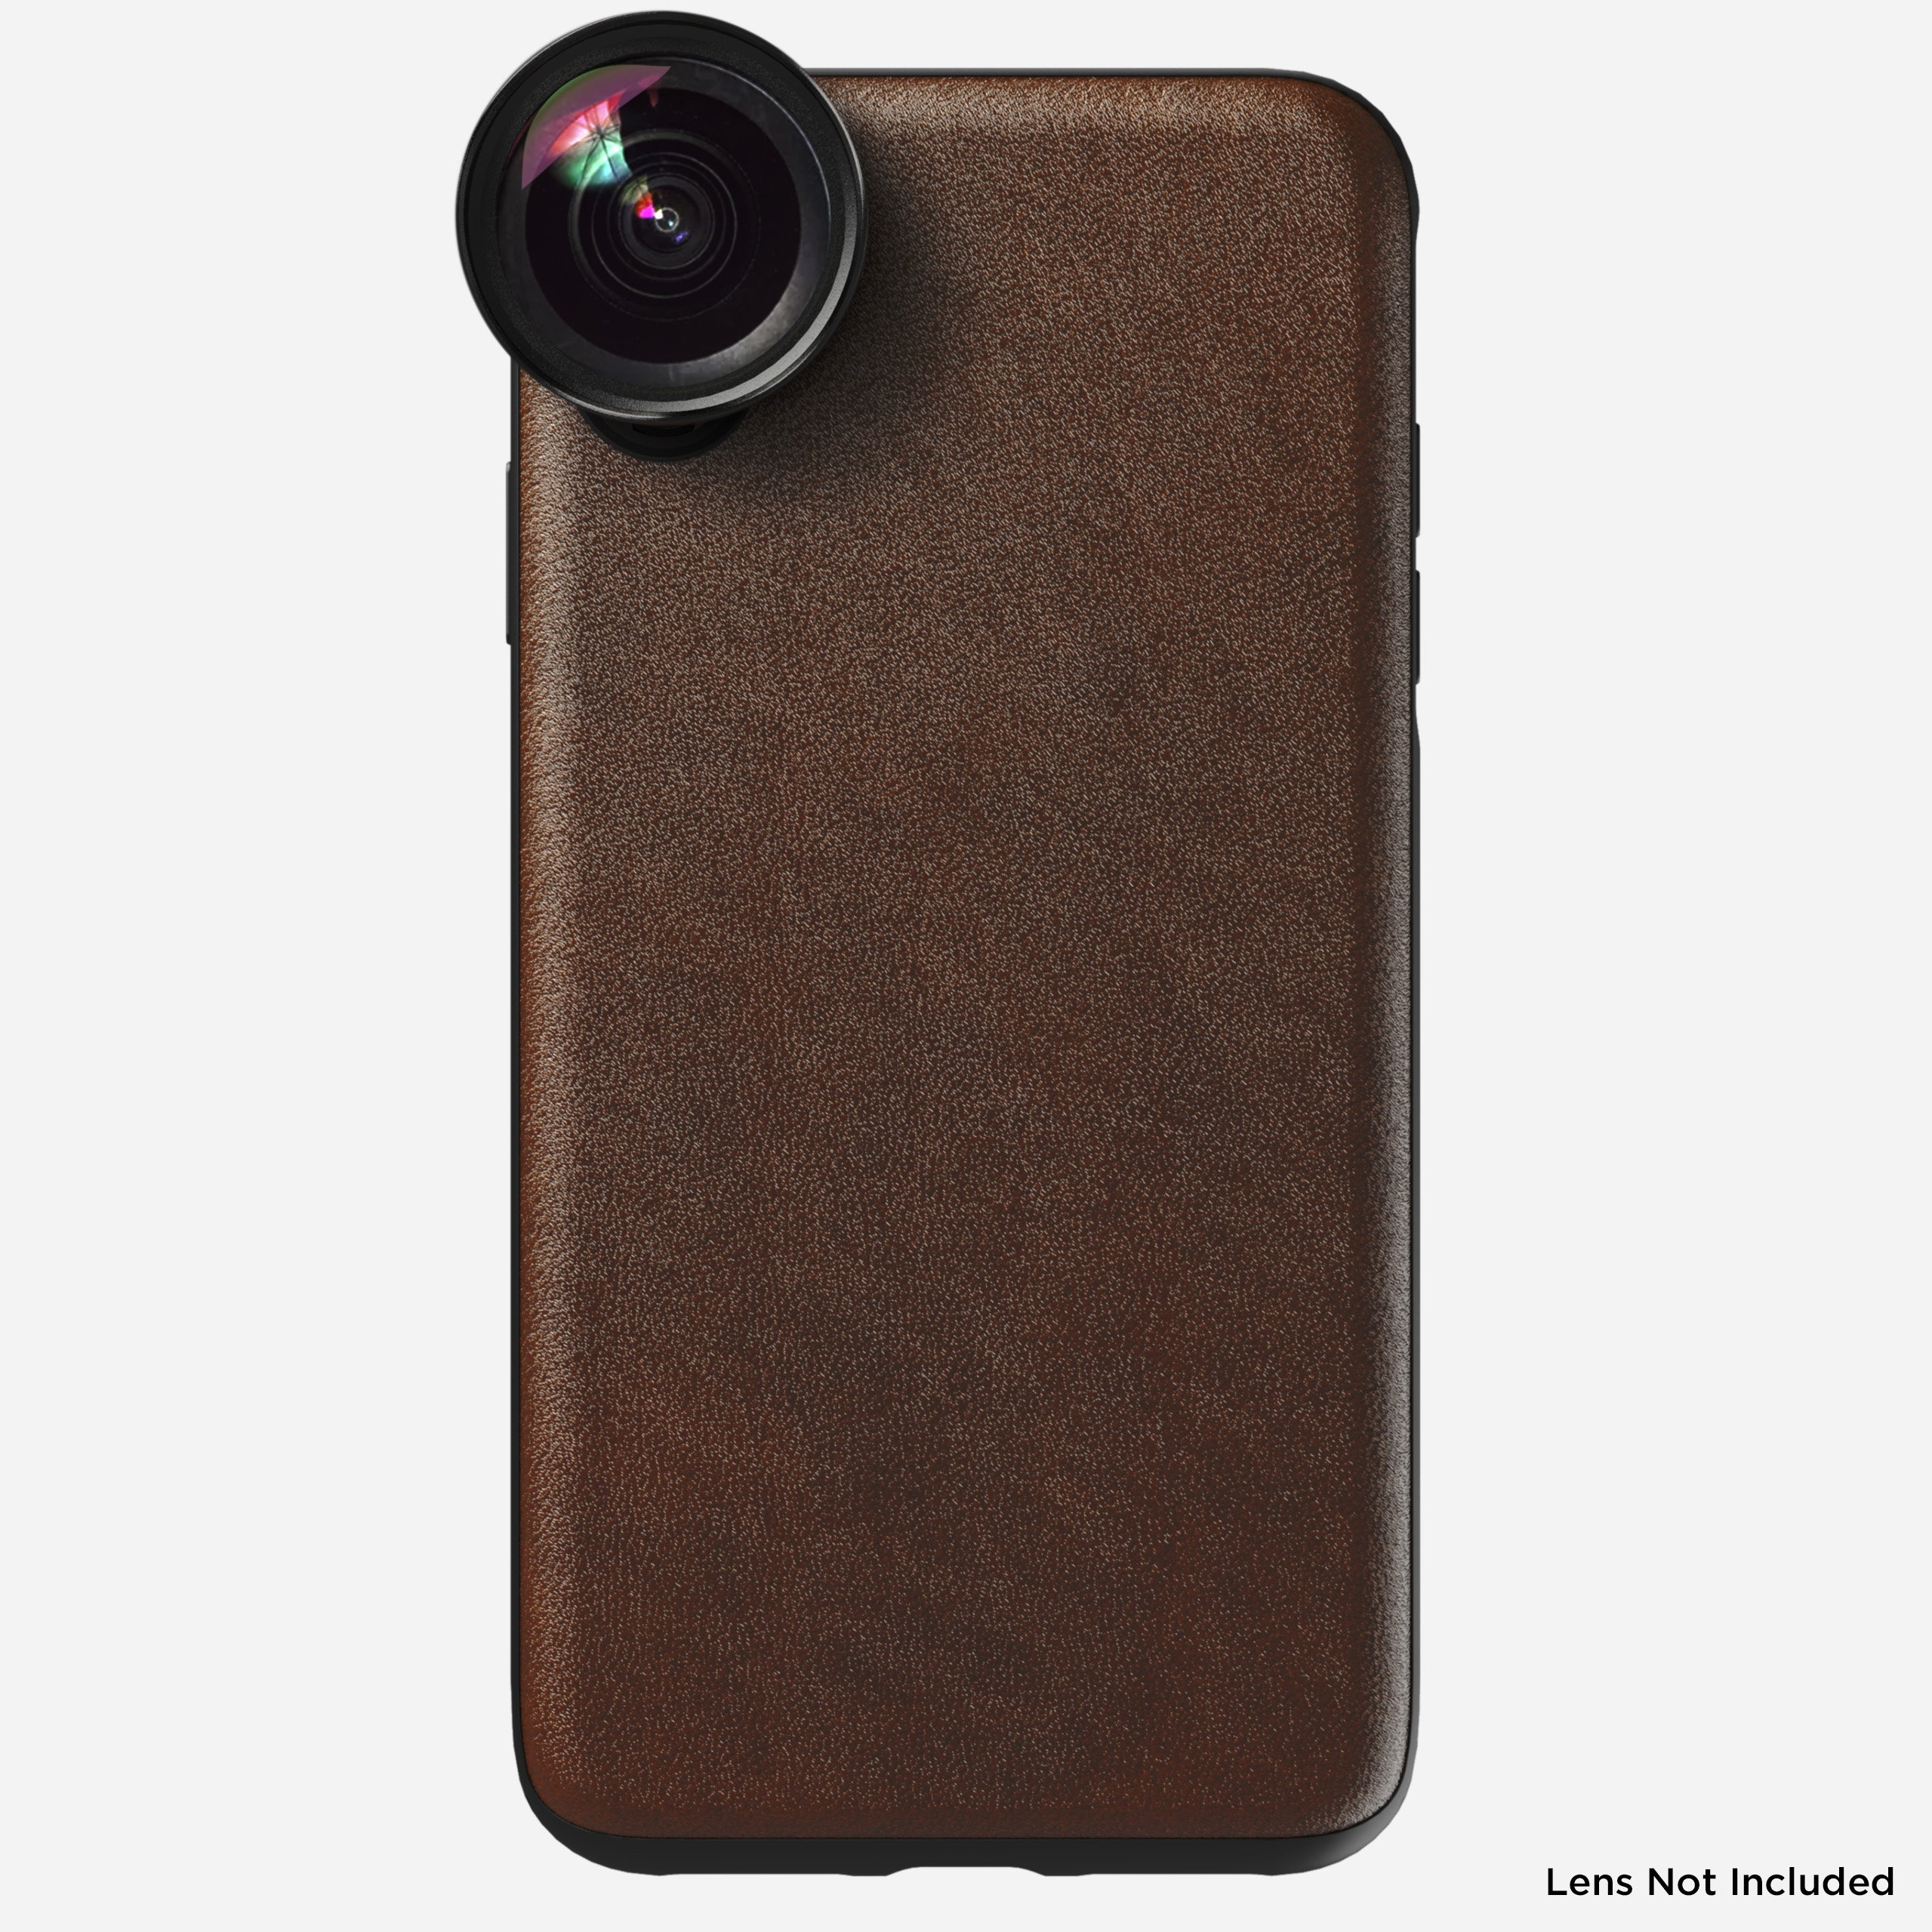 Rugged case rustic brown moment xs max